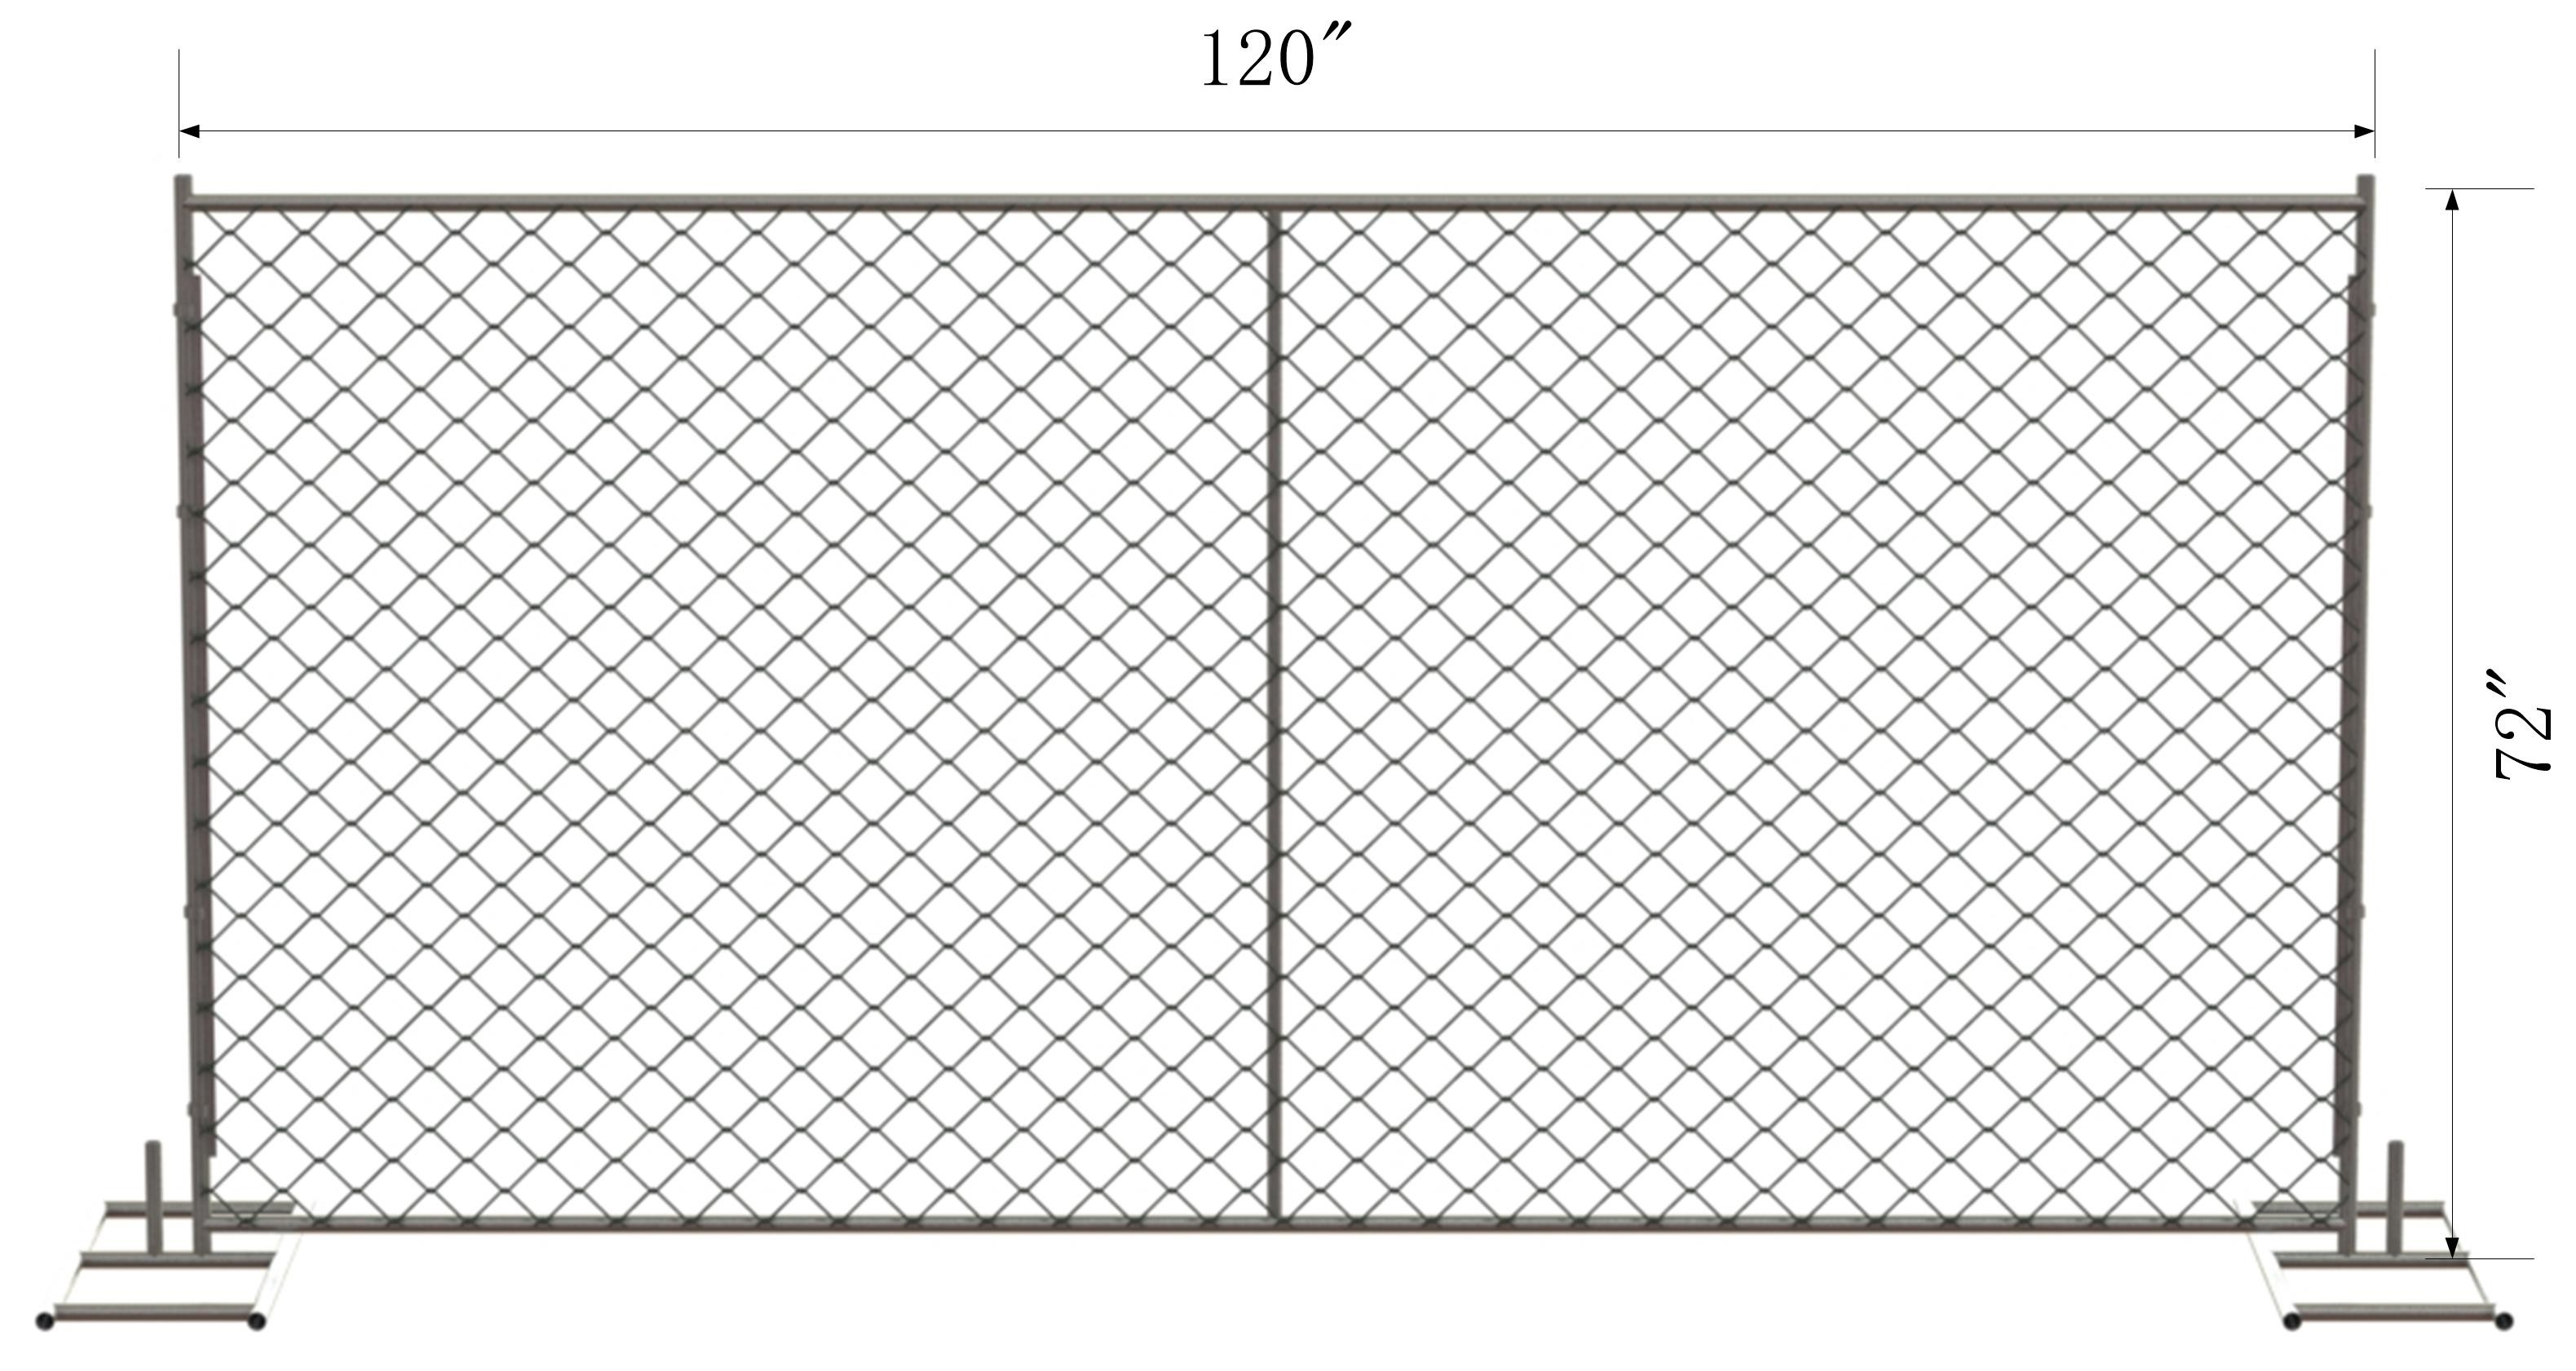 6 X 10 Chain Link Temporary Fence Panels Mesh2 ⅝ Quot X 2 5 8